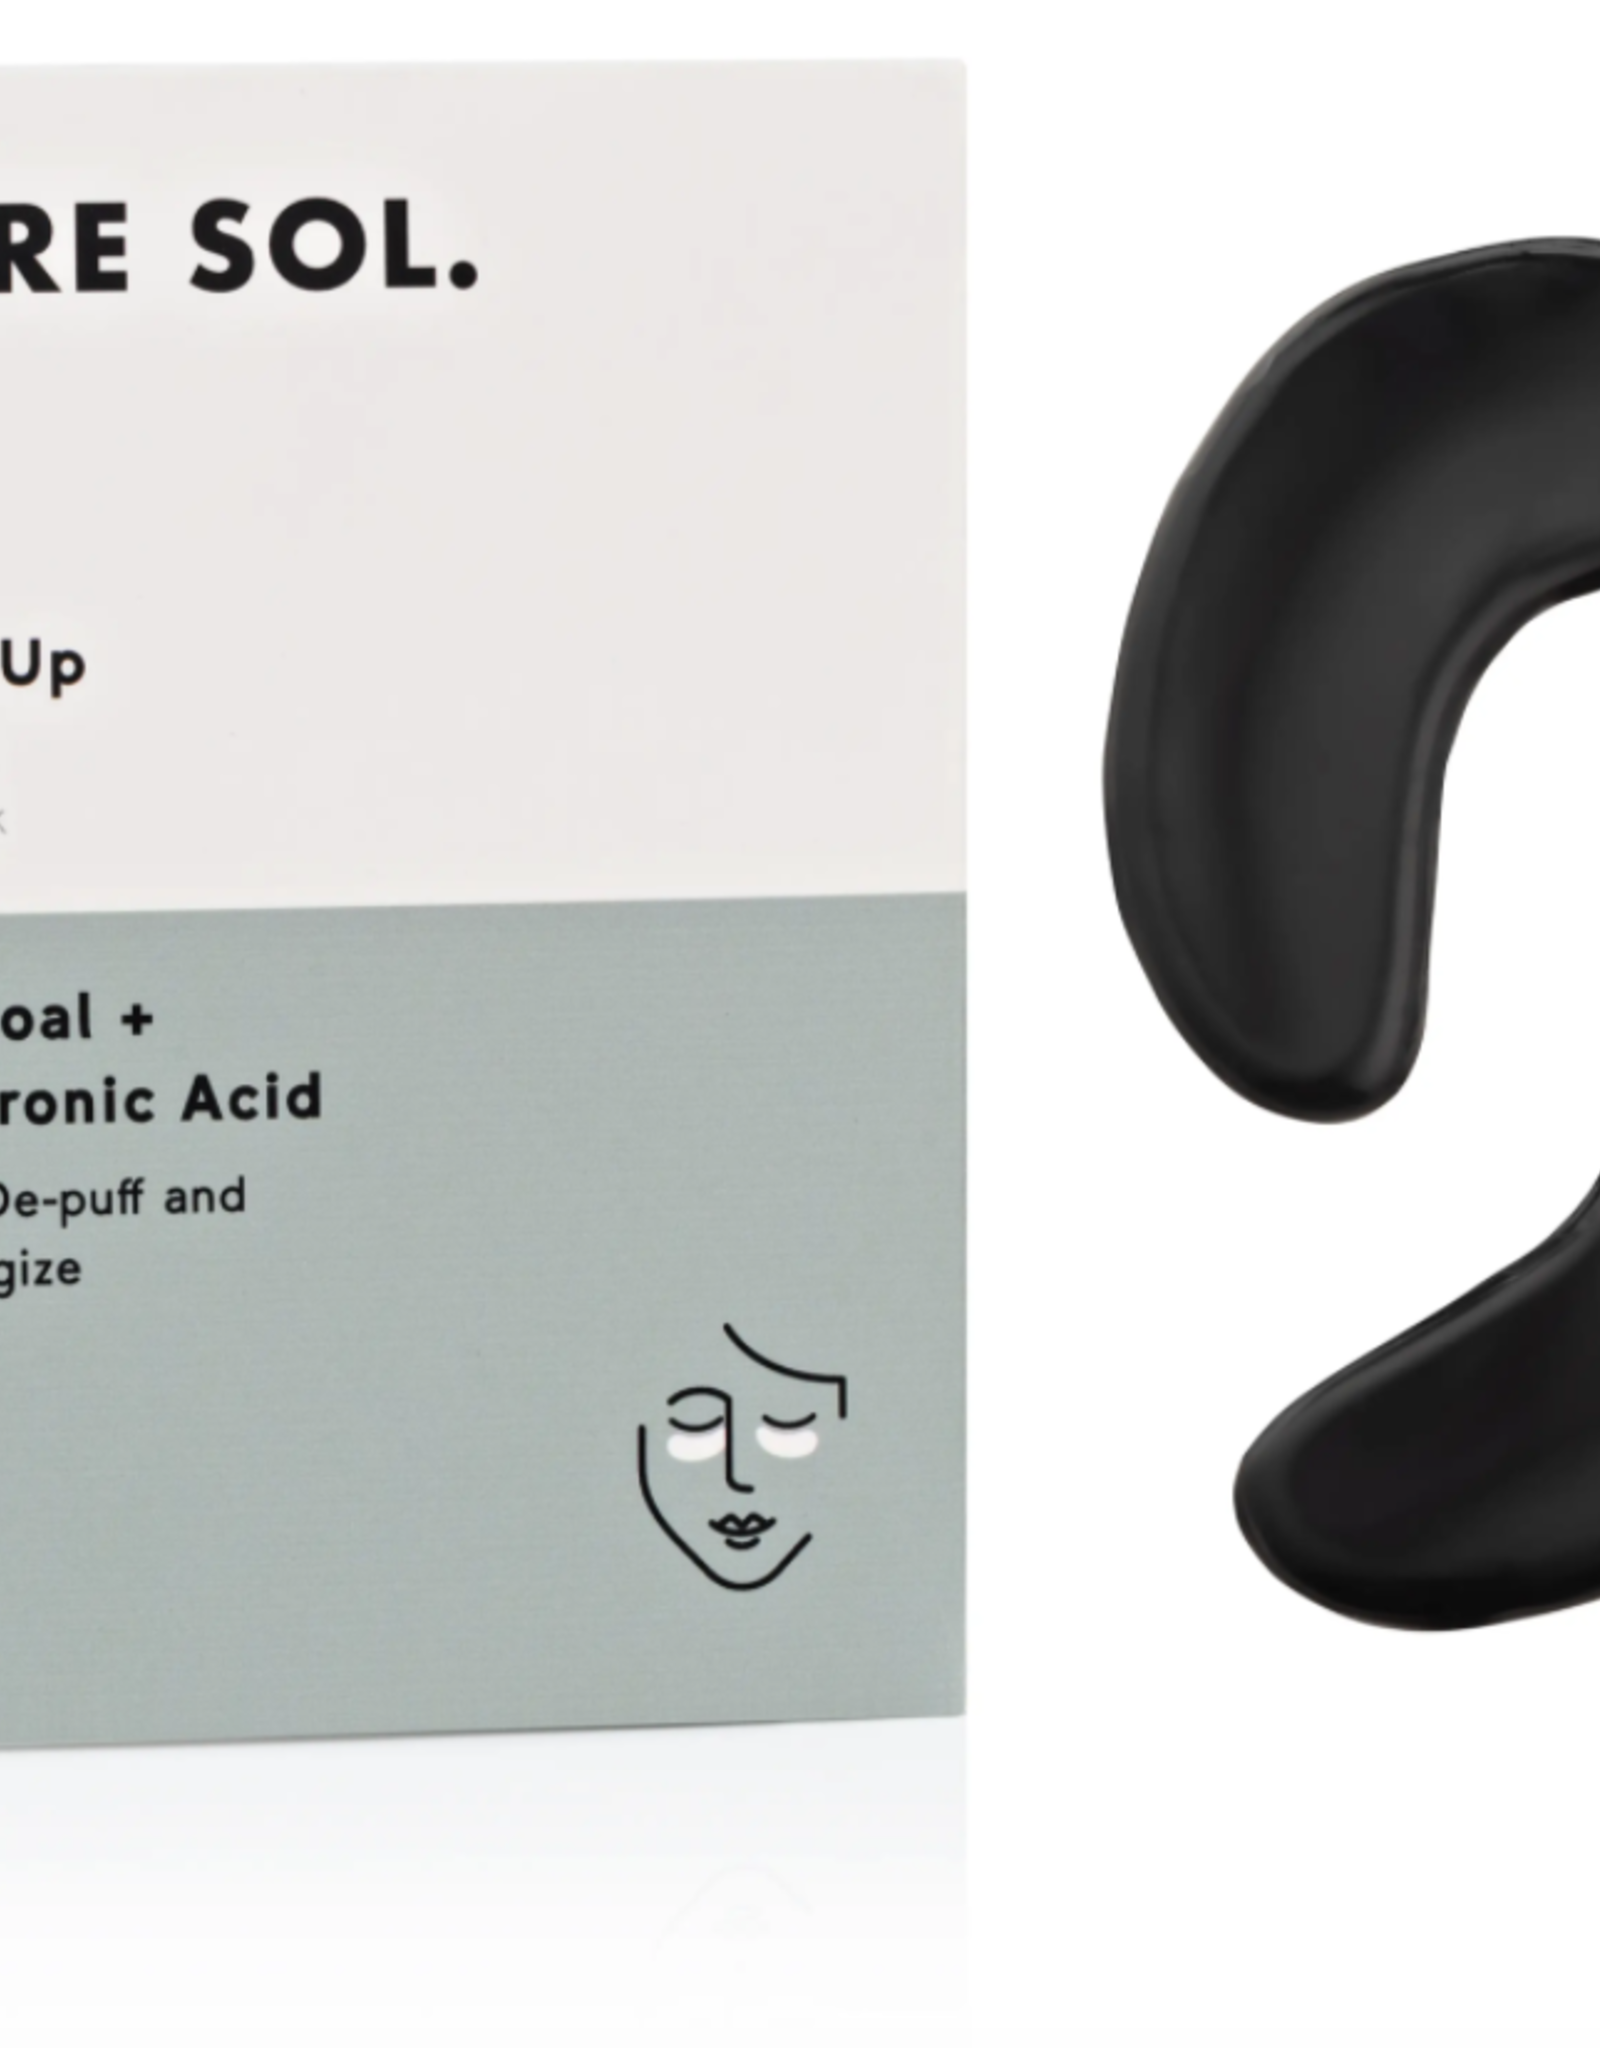 Wake Up - Charcoal + Hyaluronic Acid Hydrogel Eye Patches